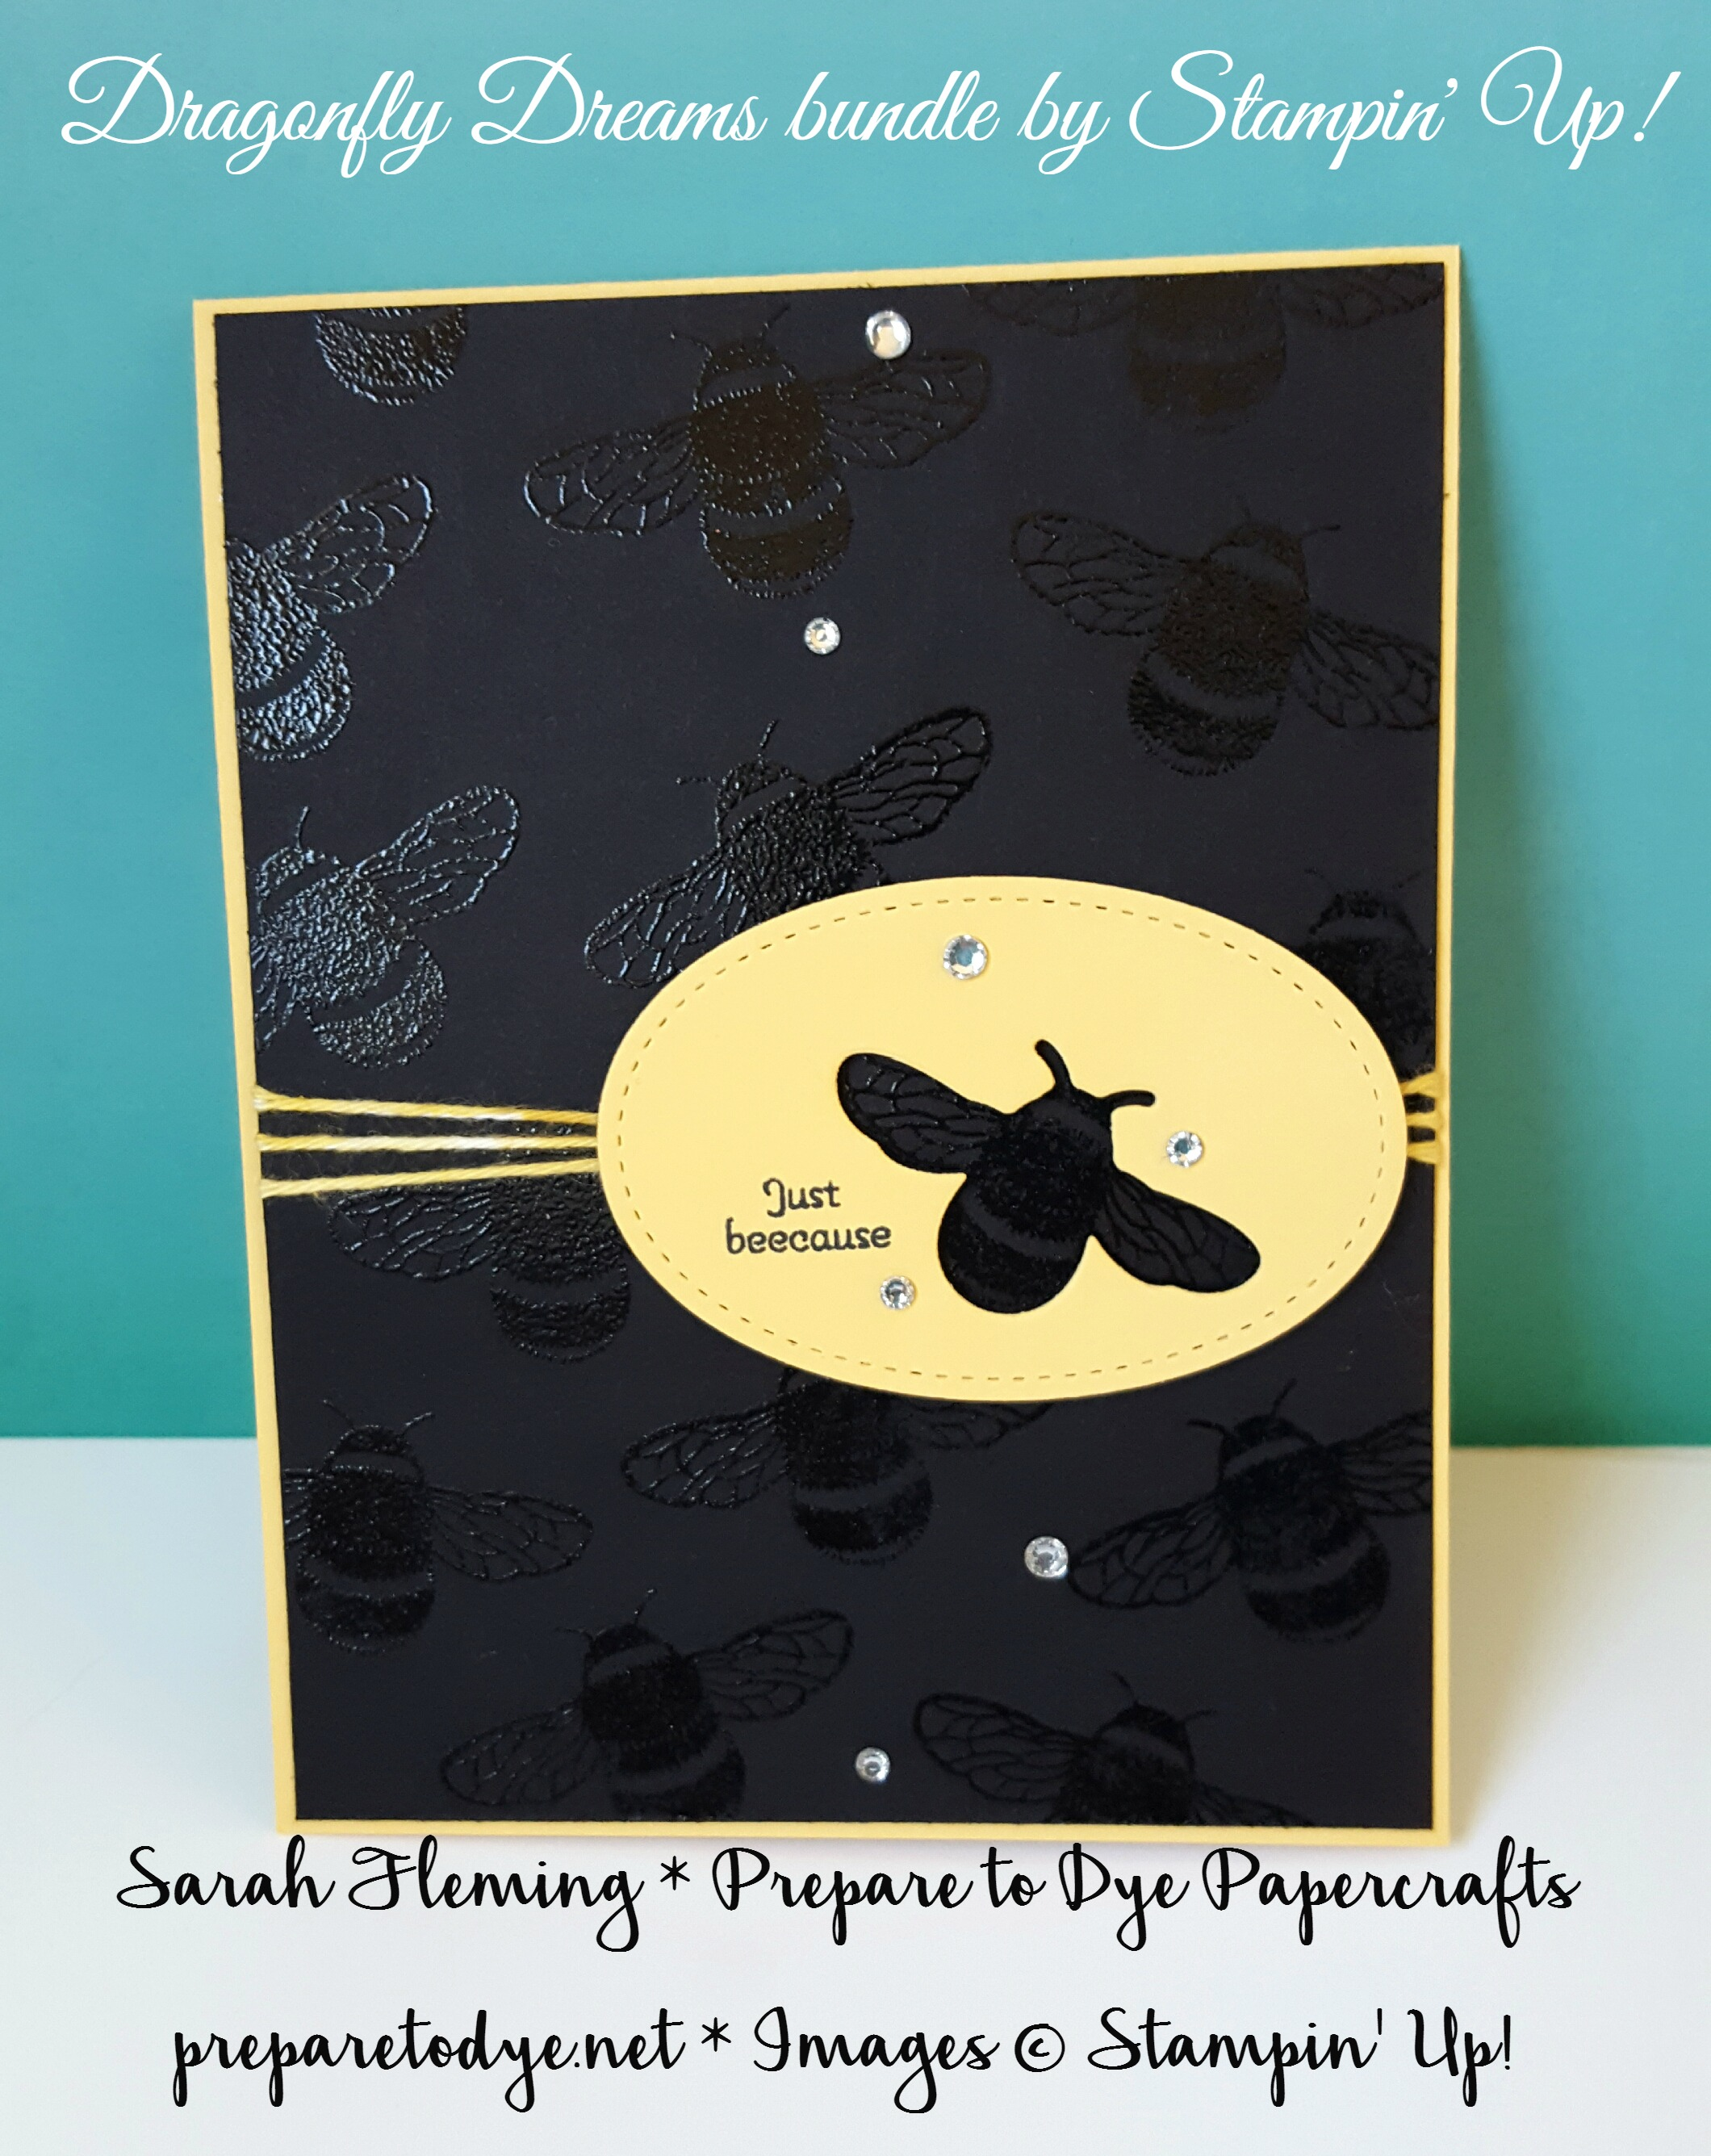 Stampin' Up! Dragonfly Dreams bundle and Pun Intended stamp set - Sarah Fleming - Prepare to Papercrafts - #tgifc92